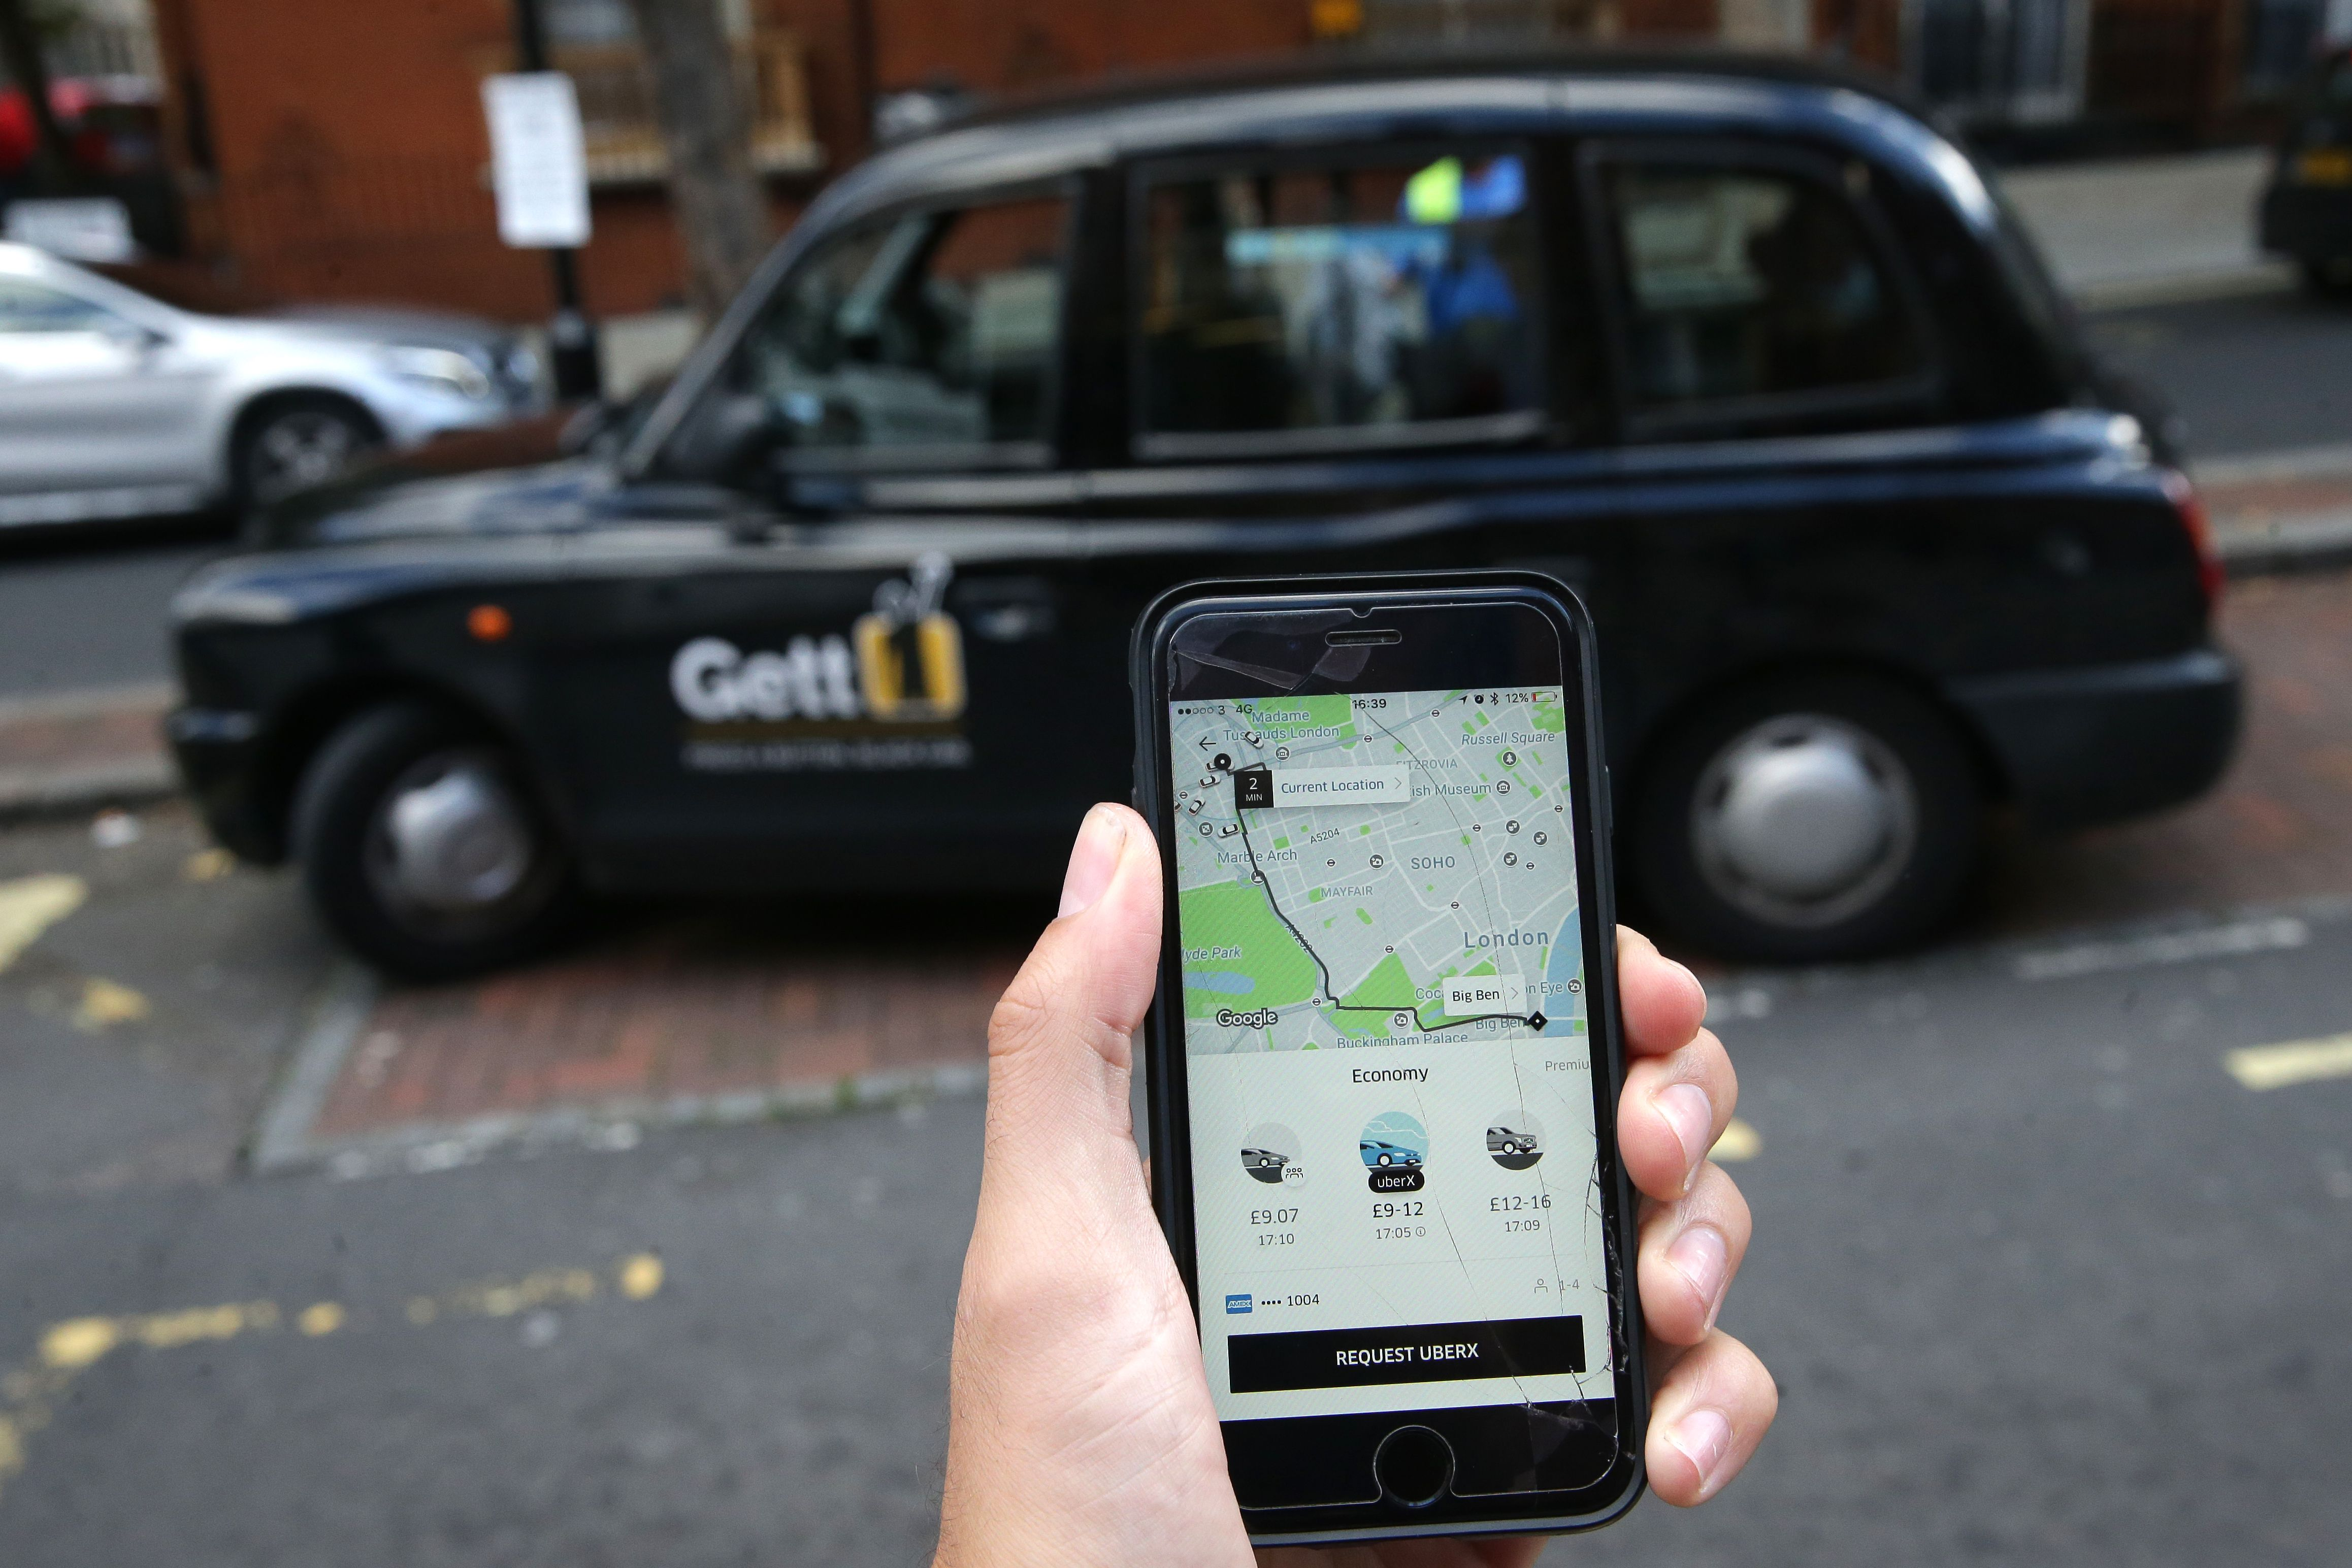 A woman poses holding a smartphone showing the App for ride-sharing cab service Uber in London on September 22, 2017. (DANIEL LEAL-OLIVAS/AFP/Getty Images)